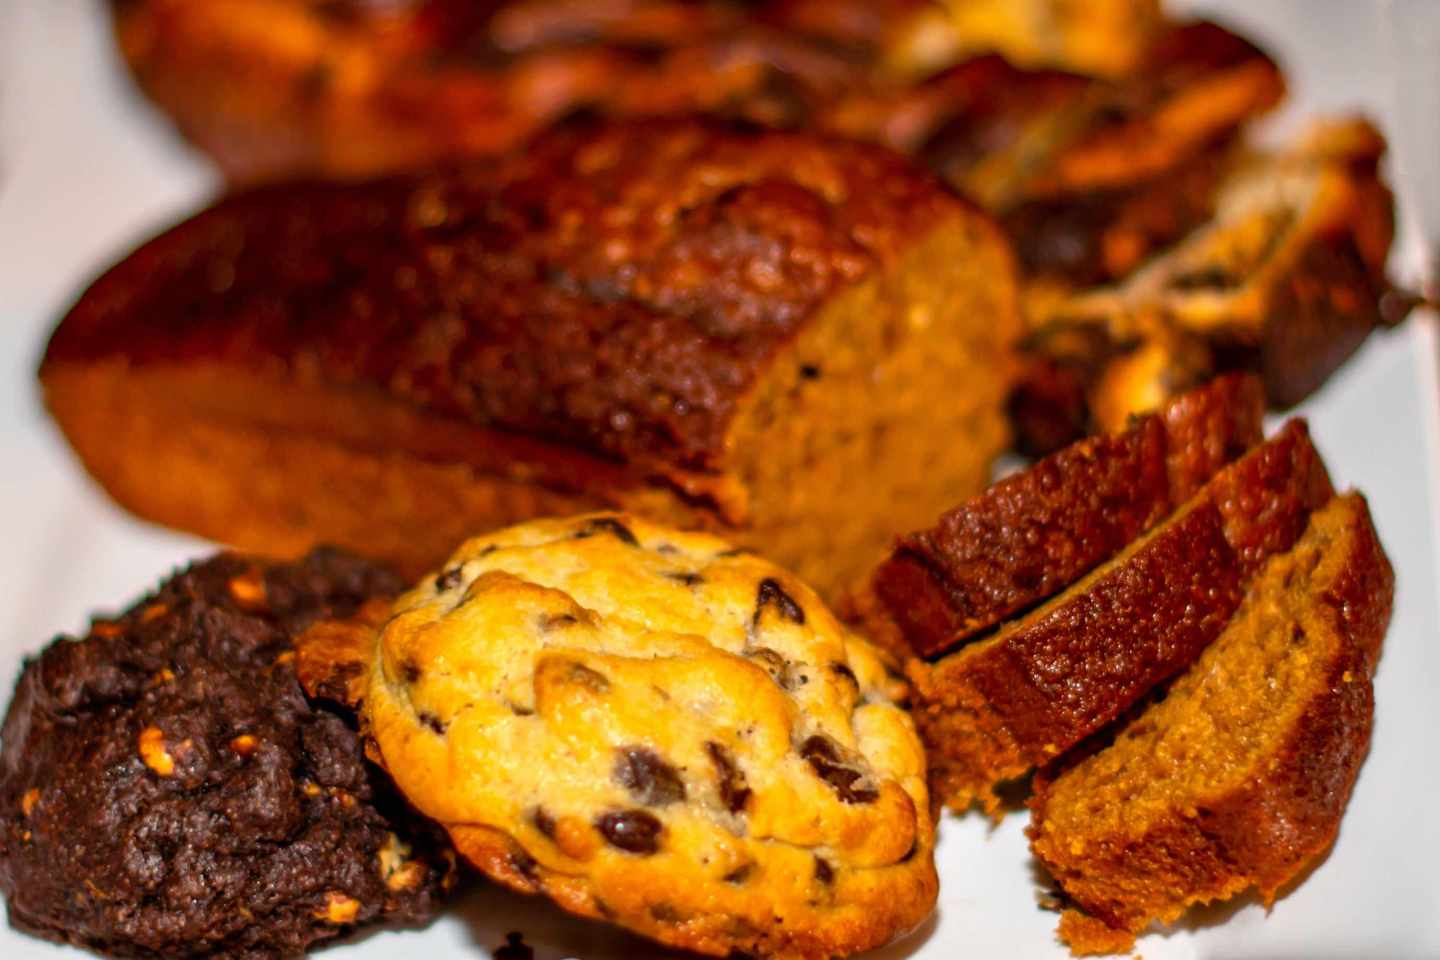 Rosh Hashanah Desserts - Honey Cake, Babka and Cookies from Amy's Bread